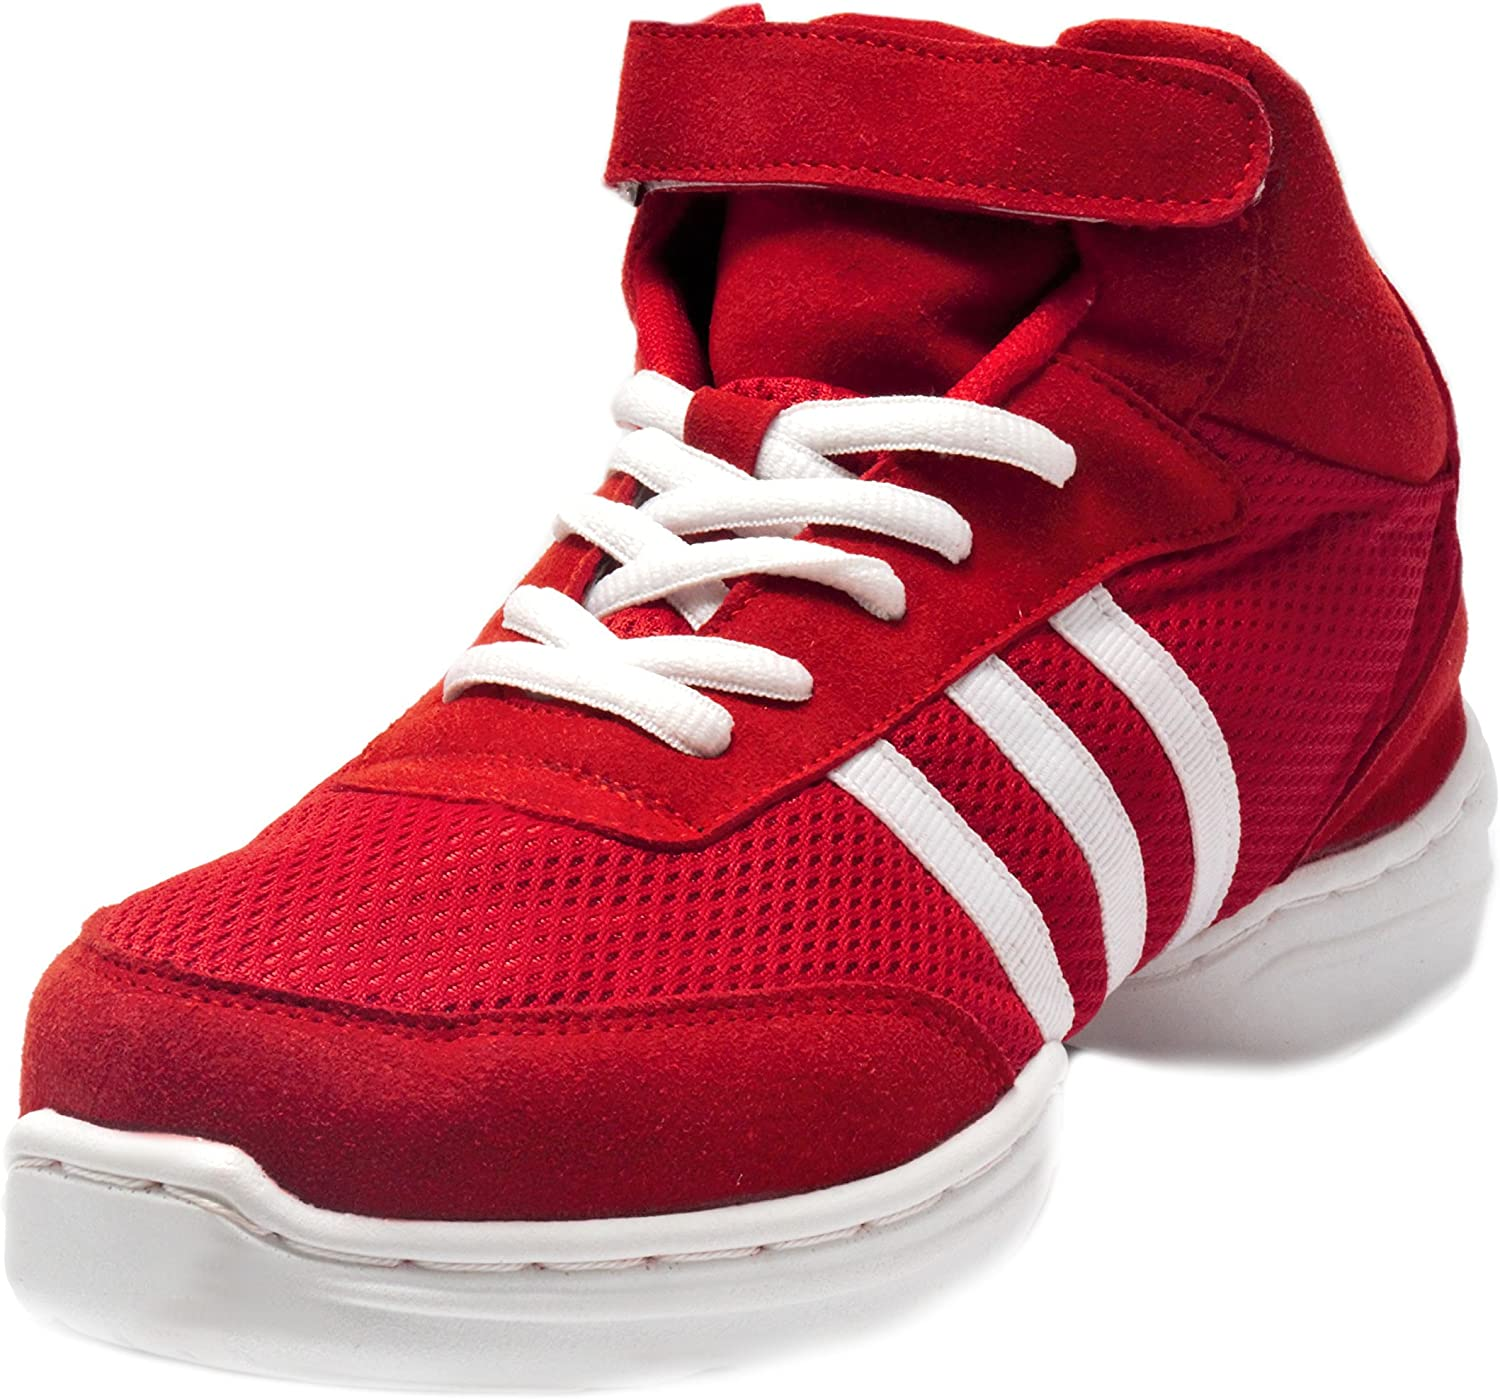 Nene's Collection RED Women's Dance Fitness shoes High Top Sneakers